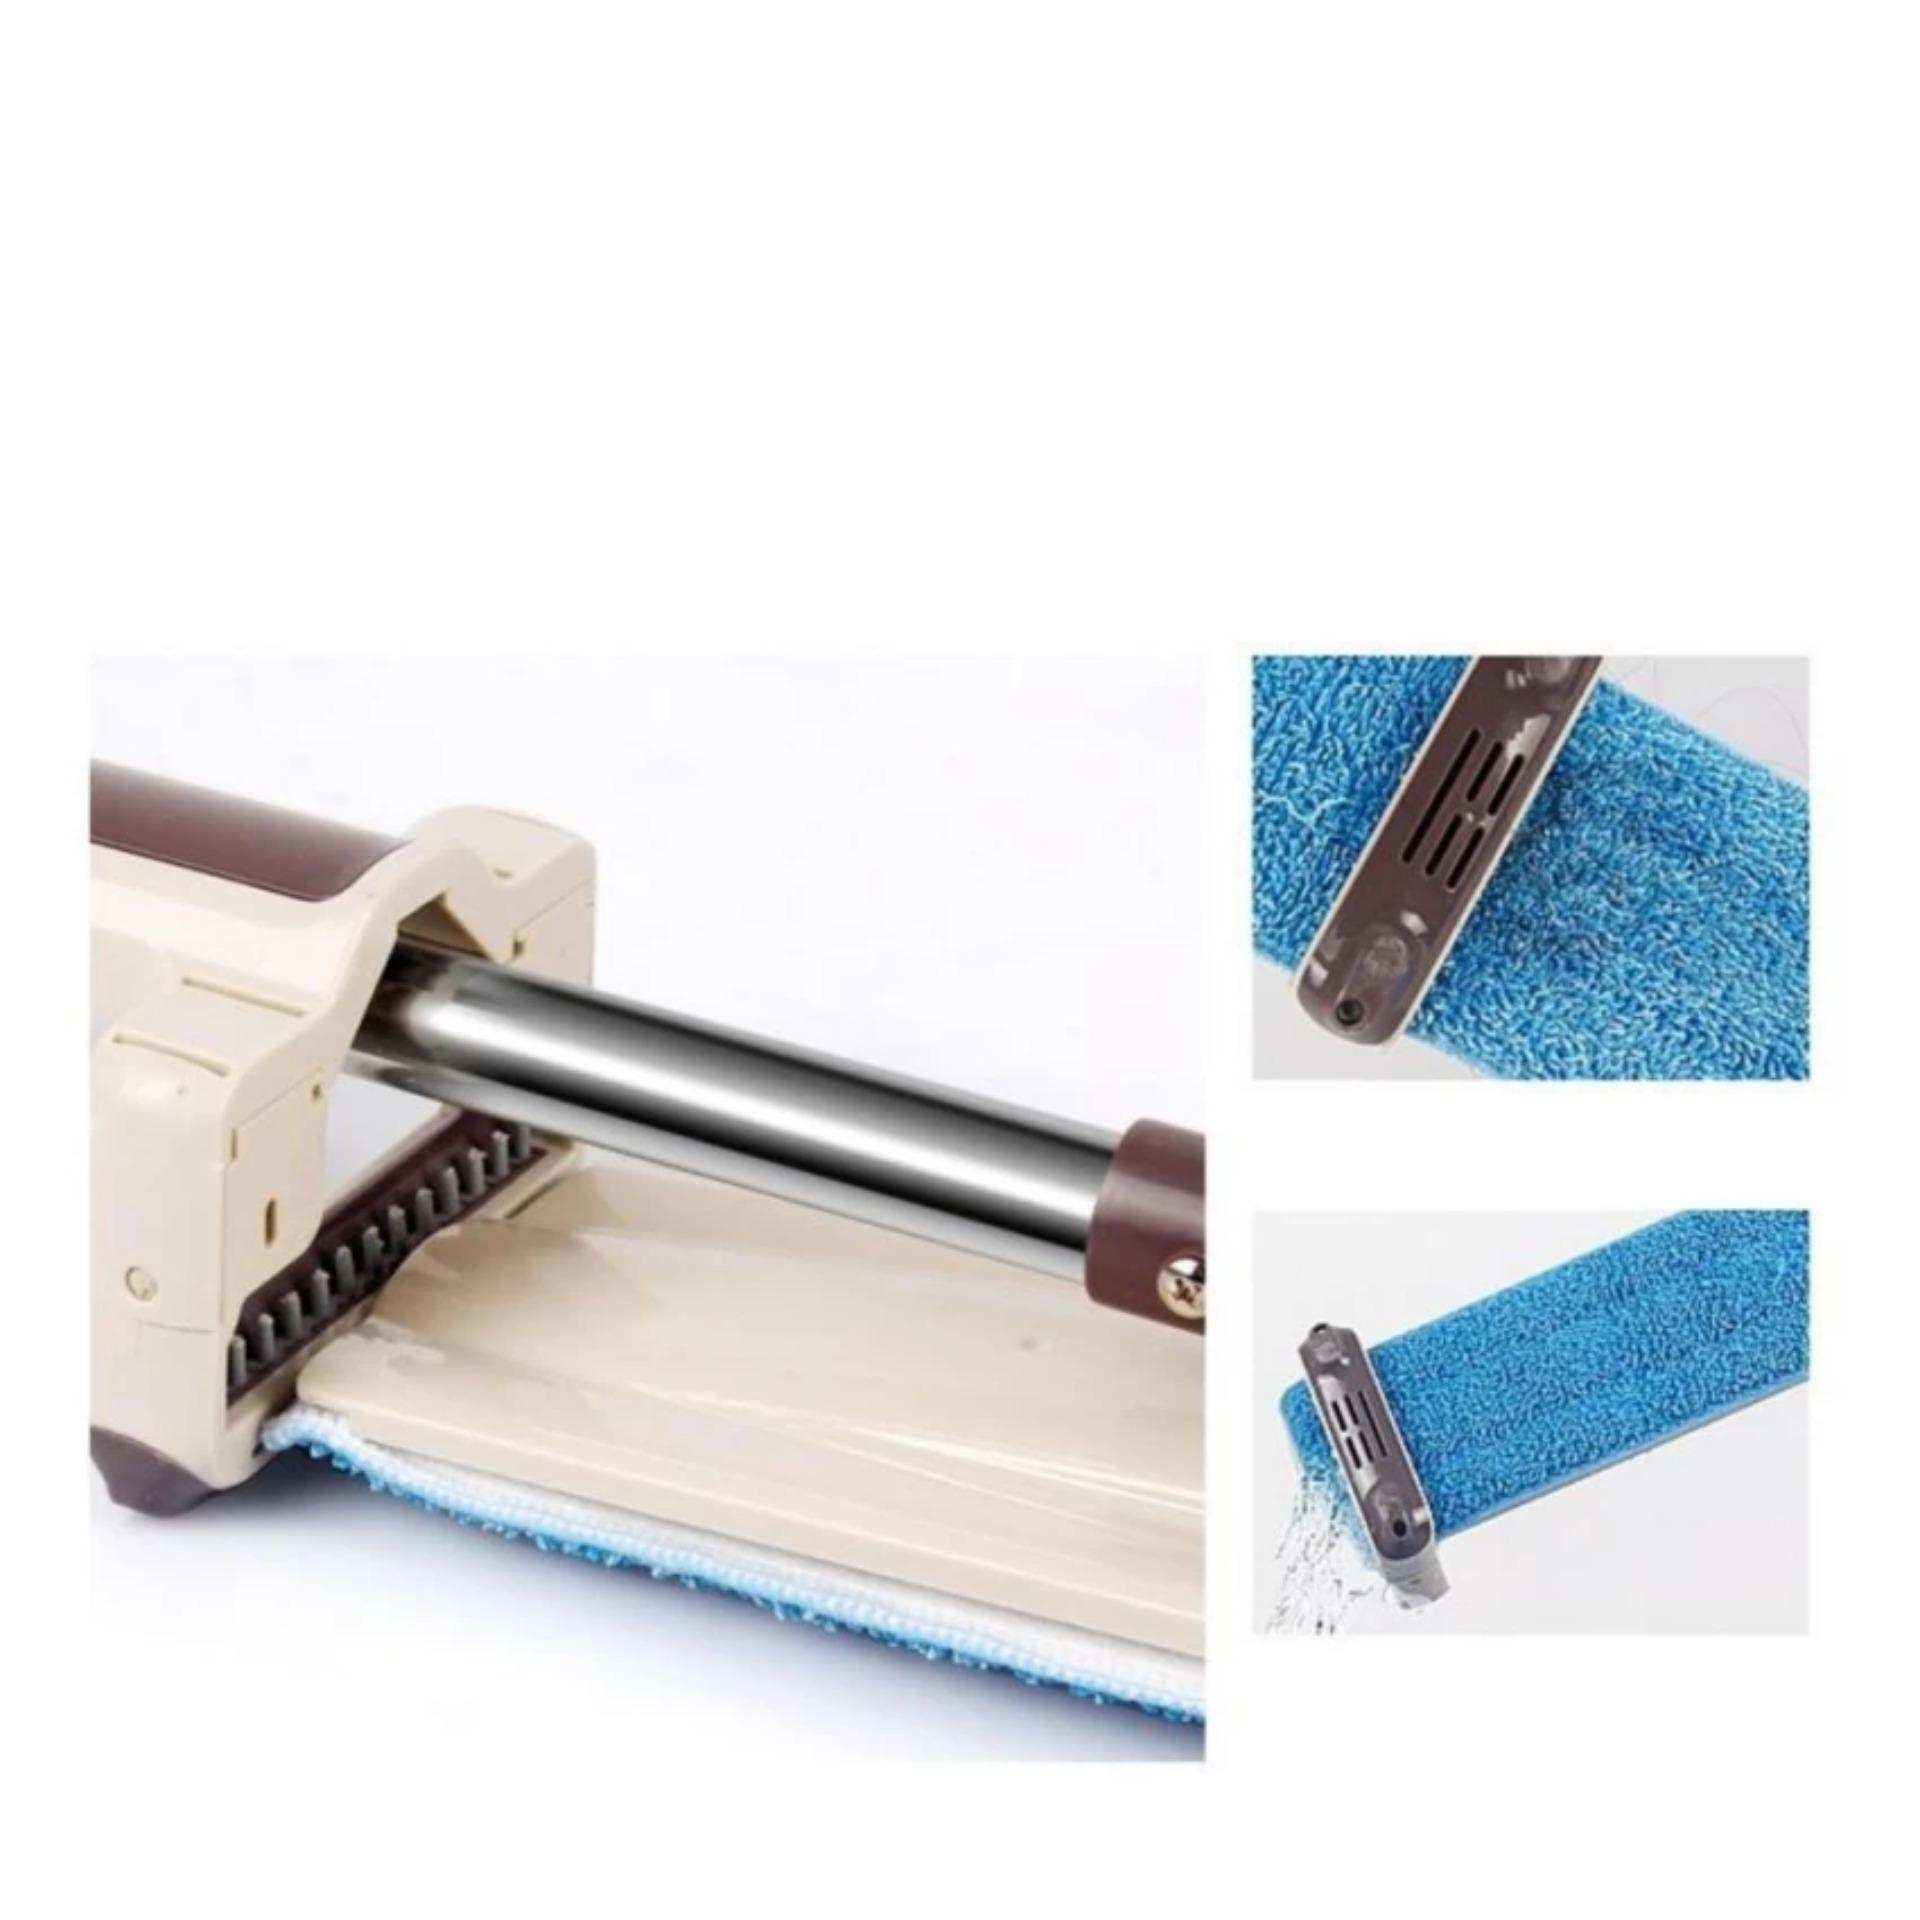 New Stand Up Dry Magic Mop with Self Cleaning Function (Brown)